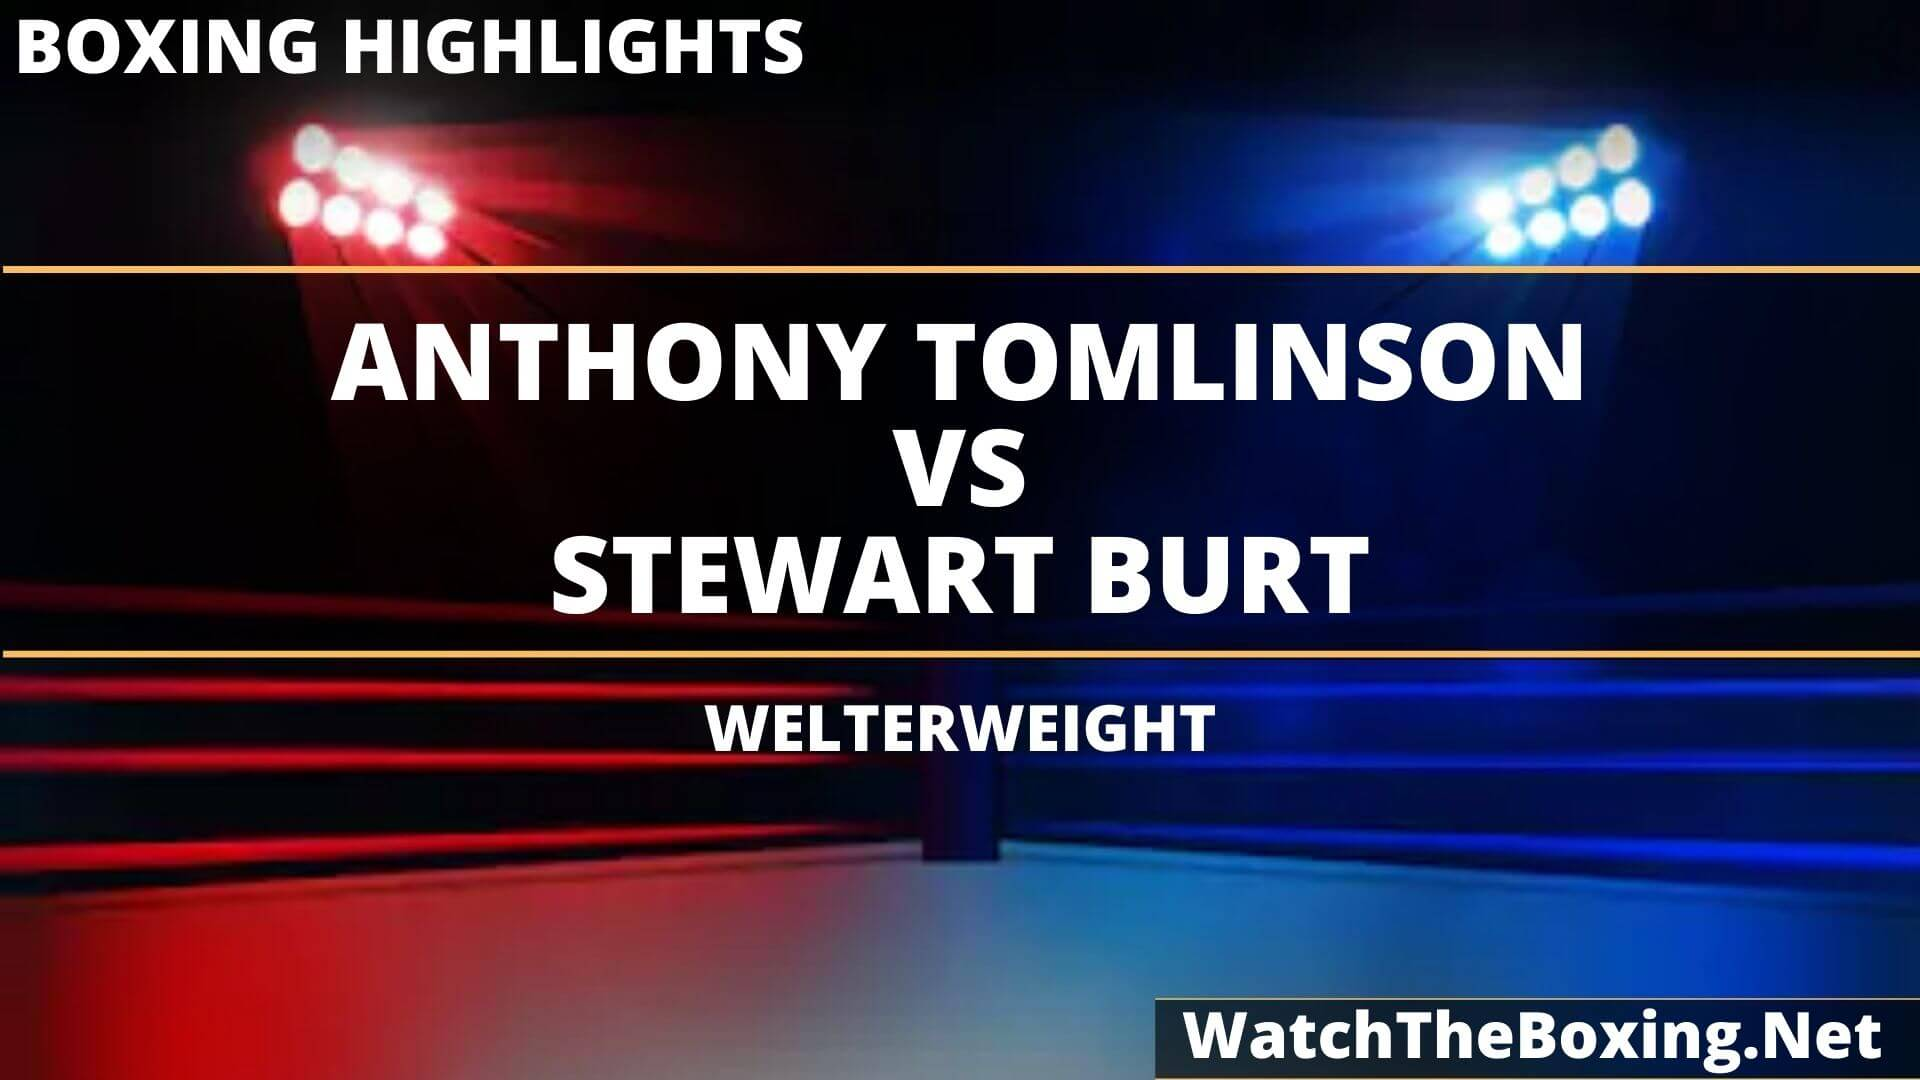 Anthony Tomlinson Vs Stewart Burt Highlights 2020